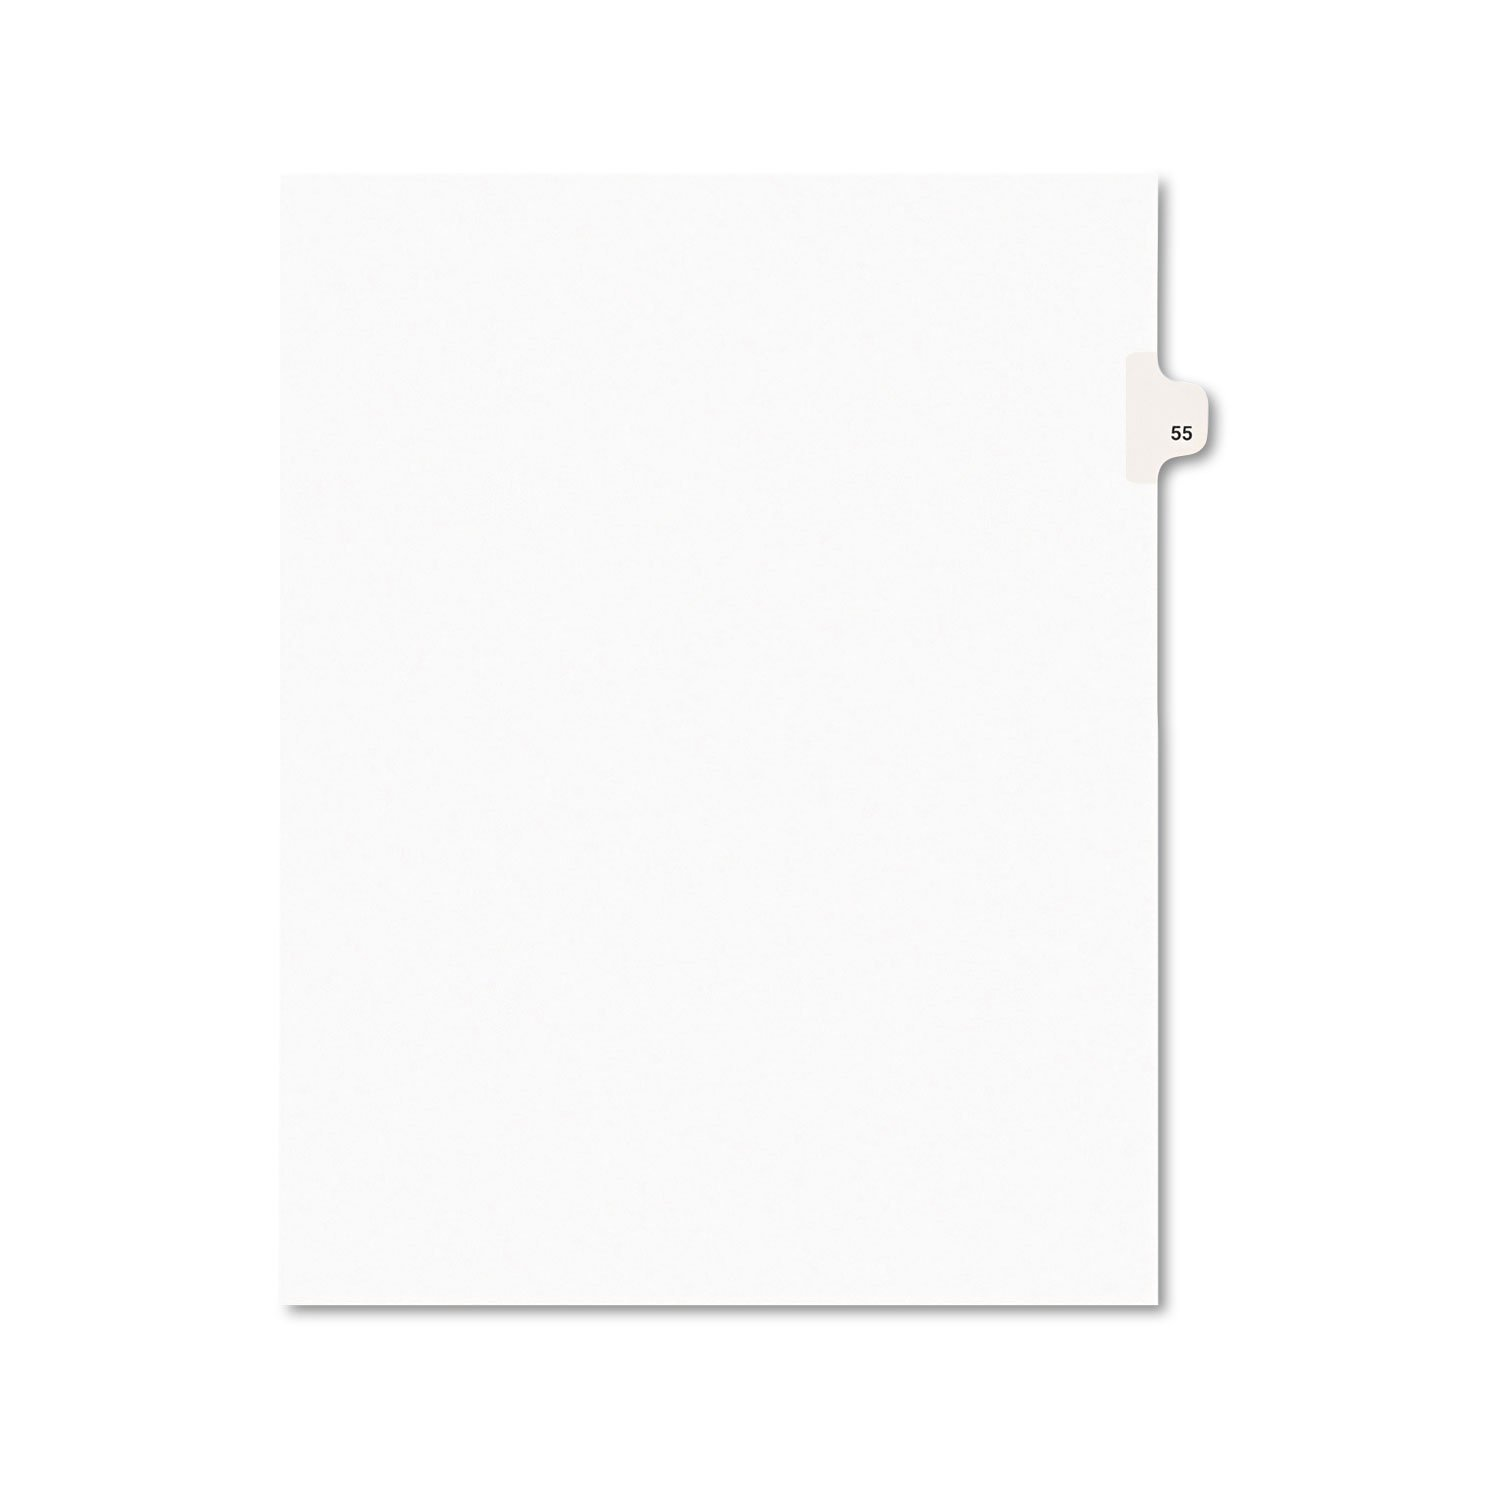 Avery 01055 Avery-Style Legal Exhibit Side Tab Divider, Title: 55, Letter, White, 25/Pack AVERY-DENNISON